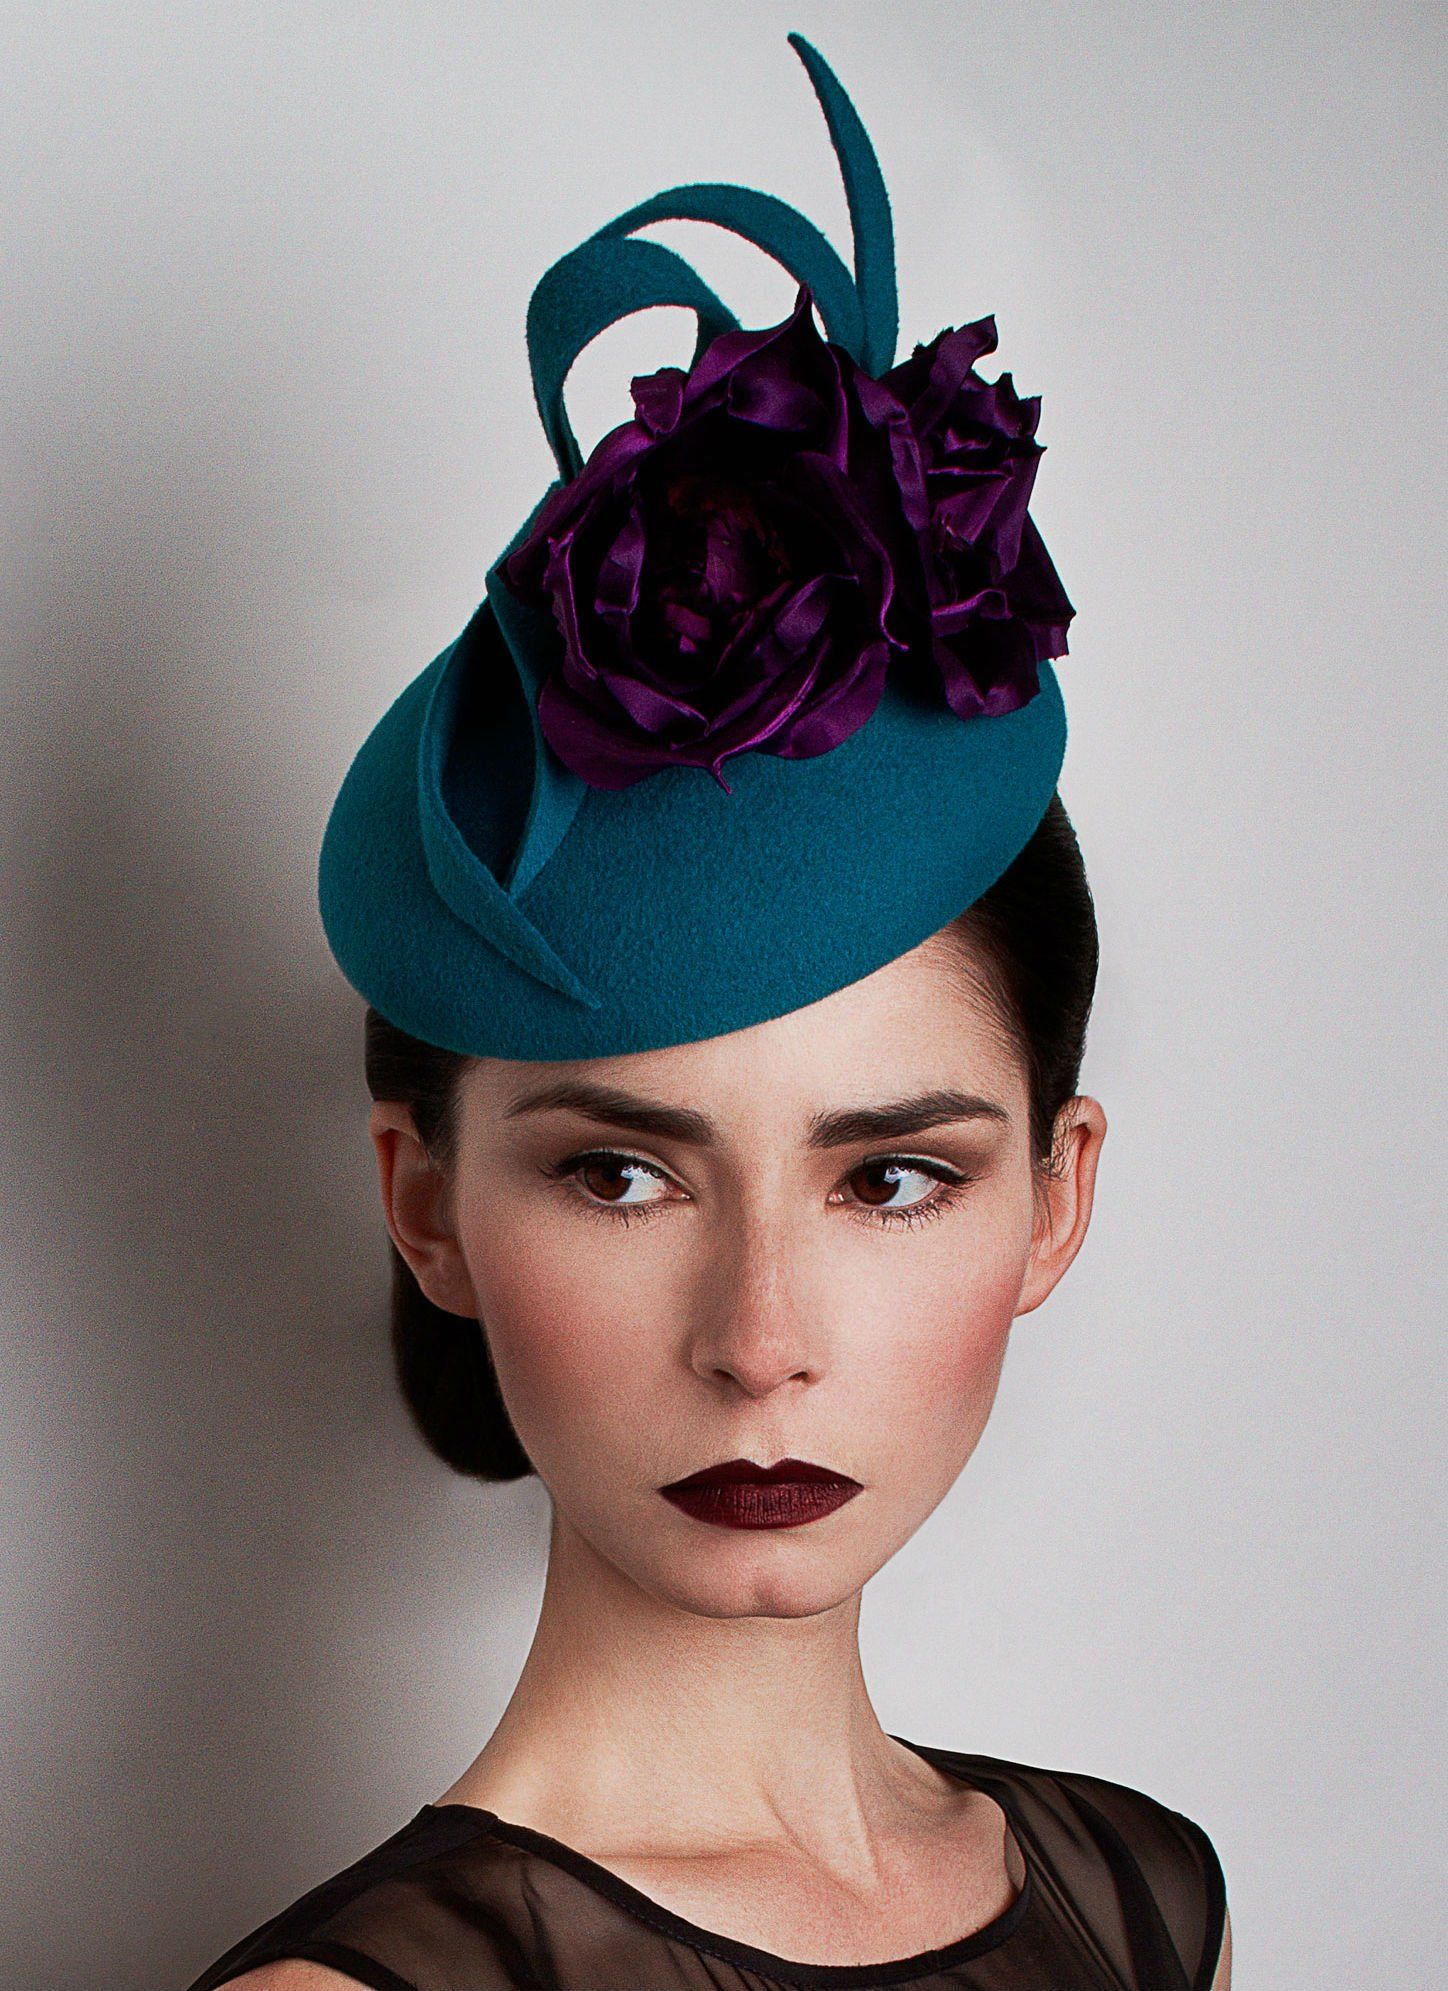 88d28df0f80 JOANNE EDWARDS MILLINERY WORKSHOPS WINTER FELT COCKTAIL HAT (WEEKEND)  Dates: Saturday 19th & Sunday 20th January 2019 10am-4.30pm Saturday 12th.